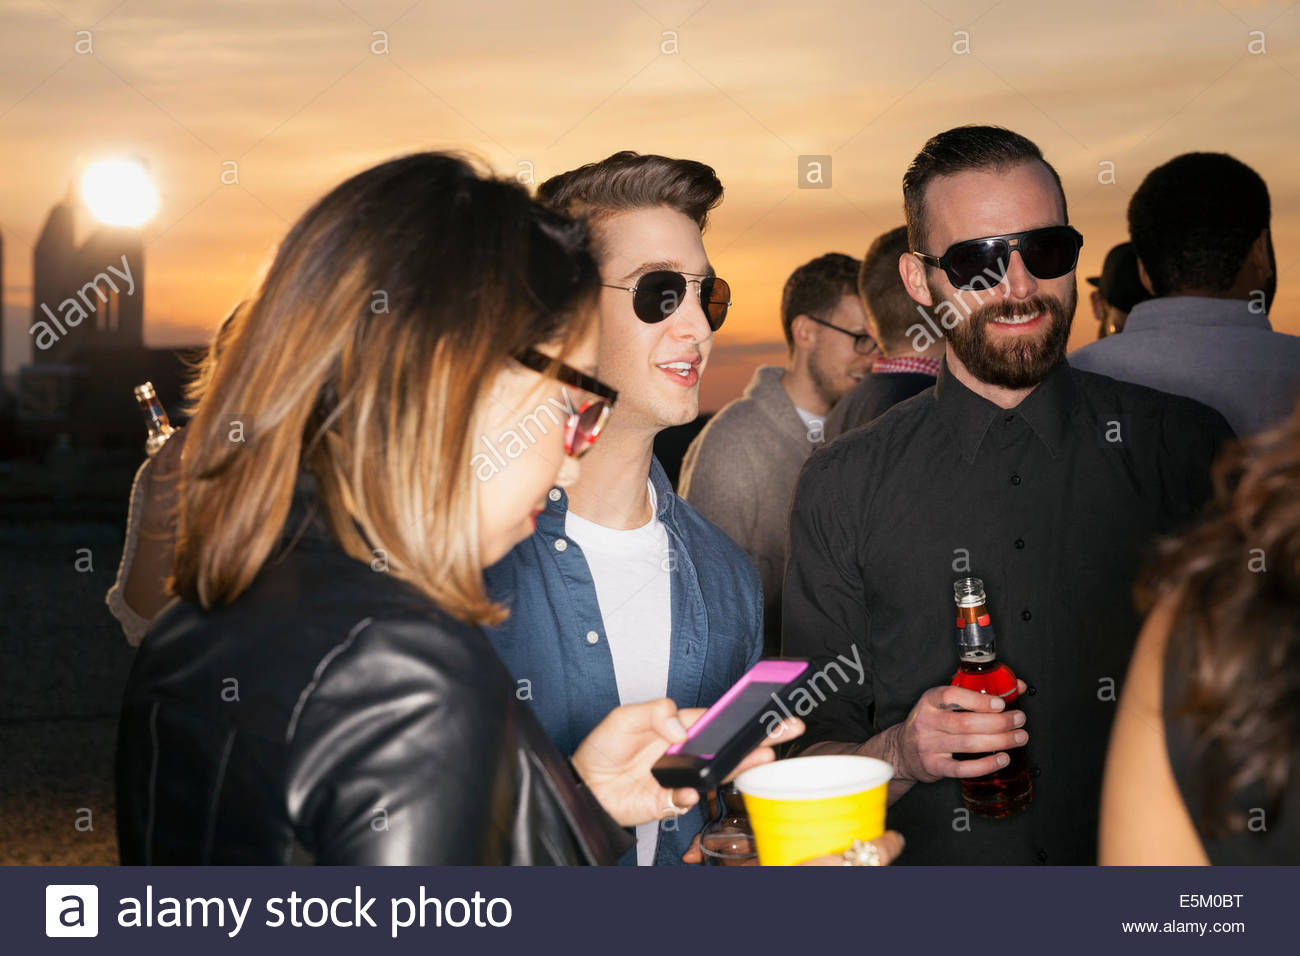 Friends drinking and talking at rooftop party - Stock Image